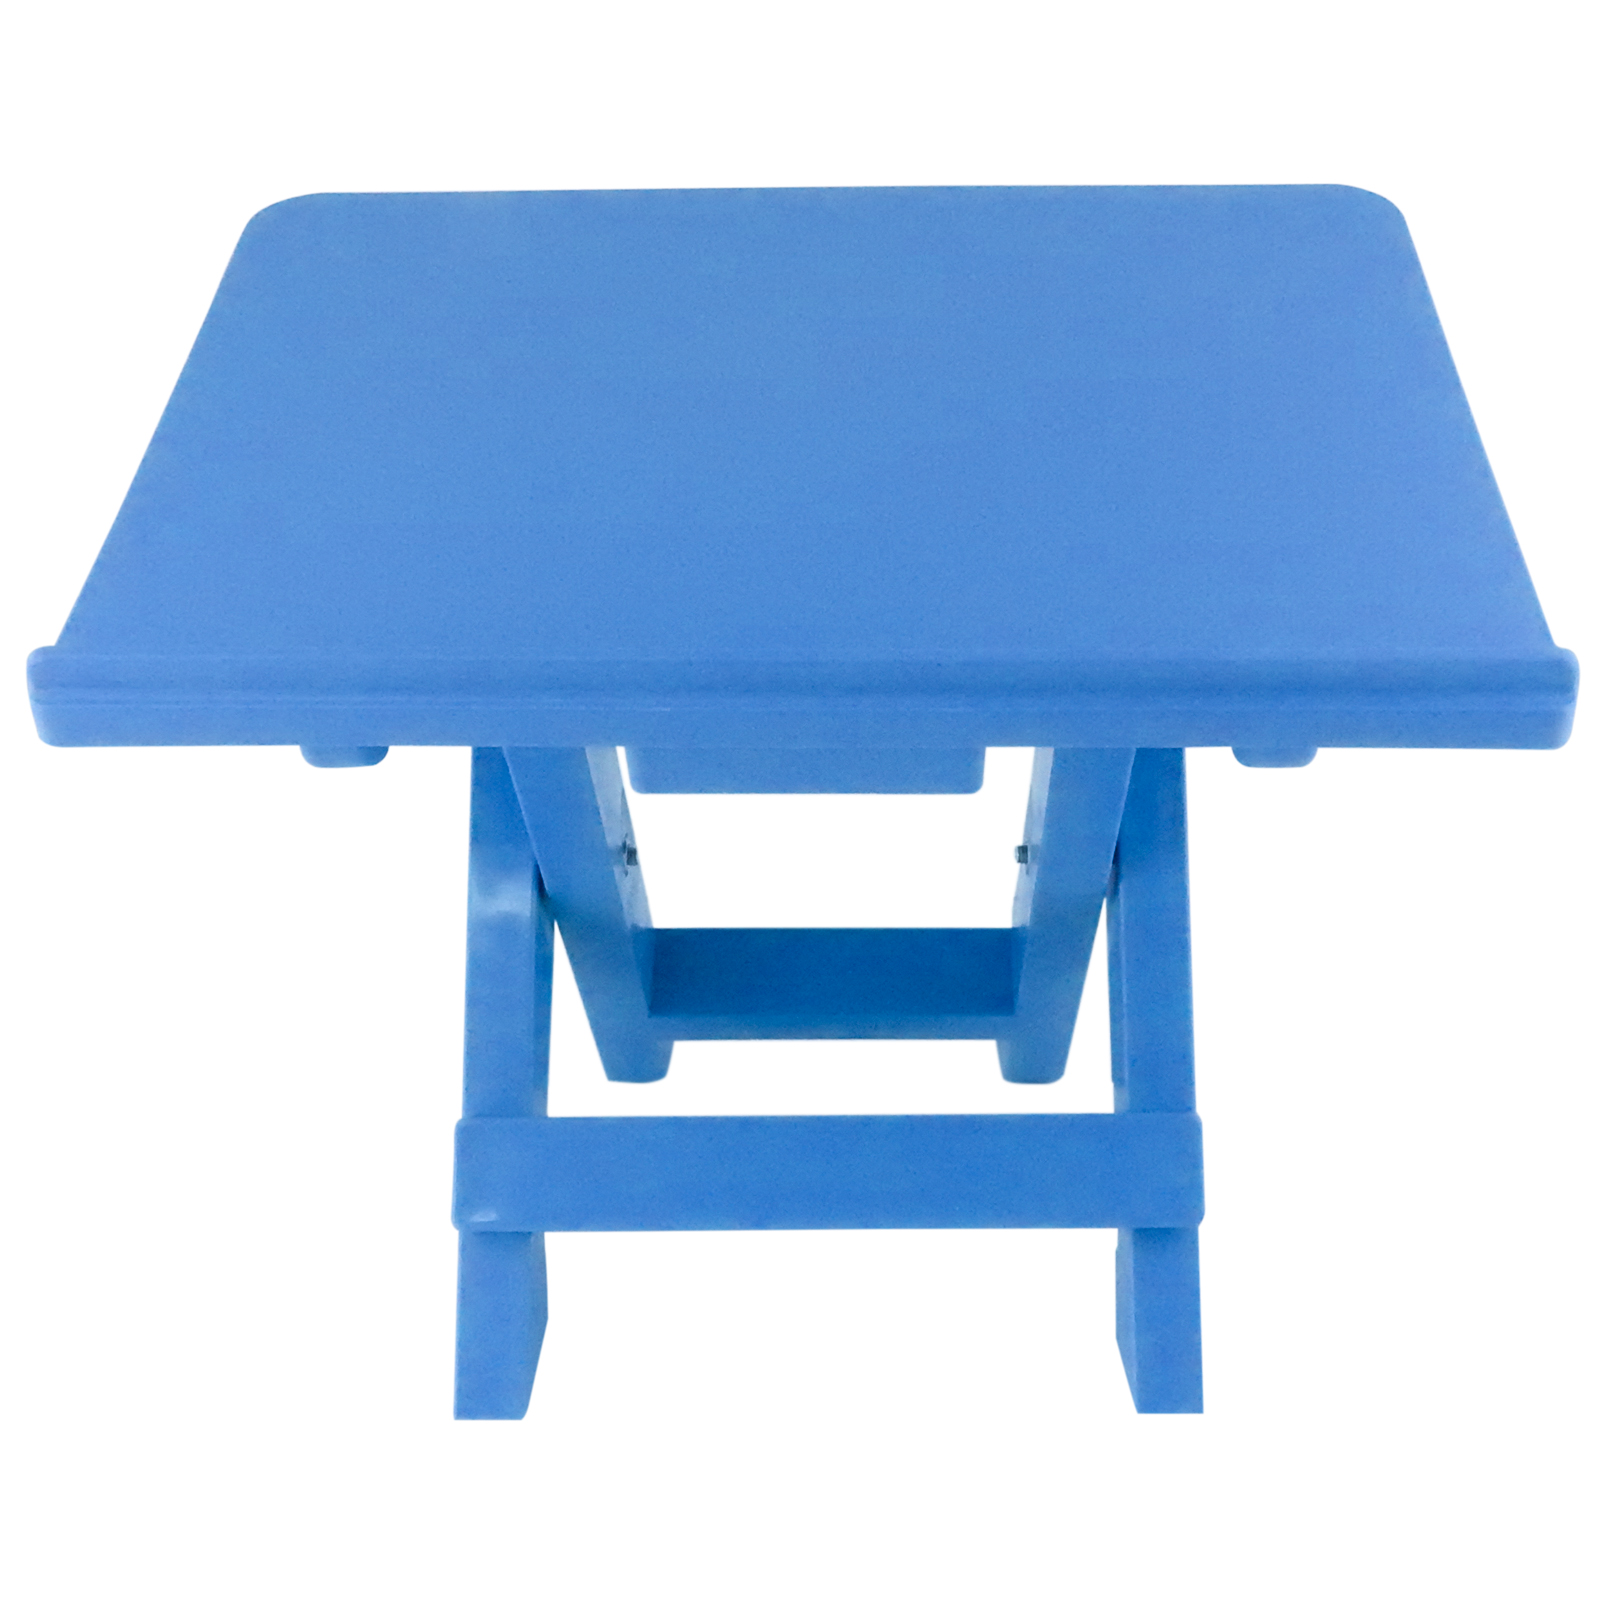 "MYDIN Blue Reading Table Rehal Plastic (8.5"" x 12.5"")"